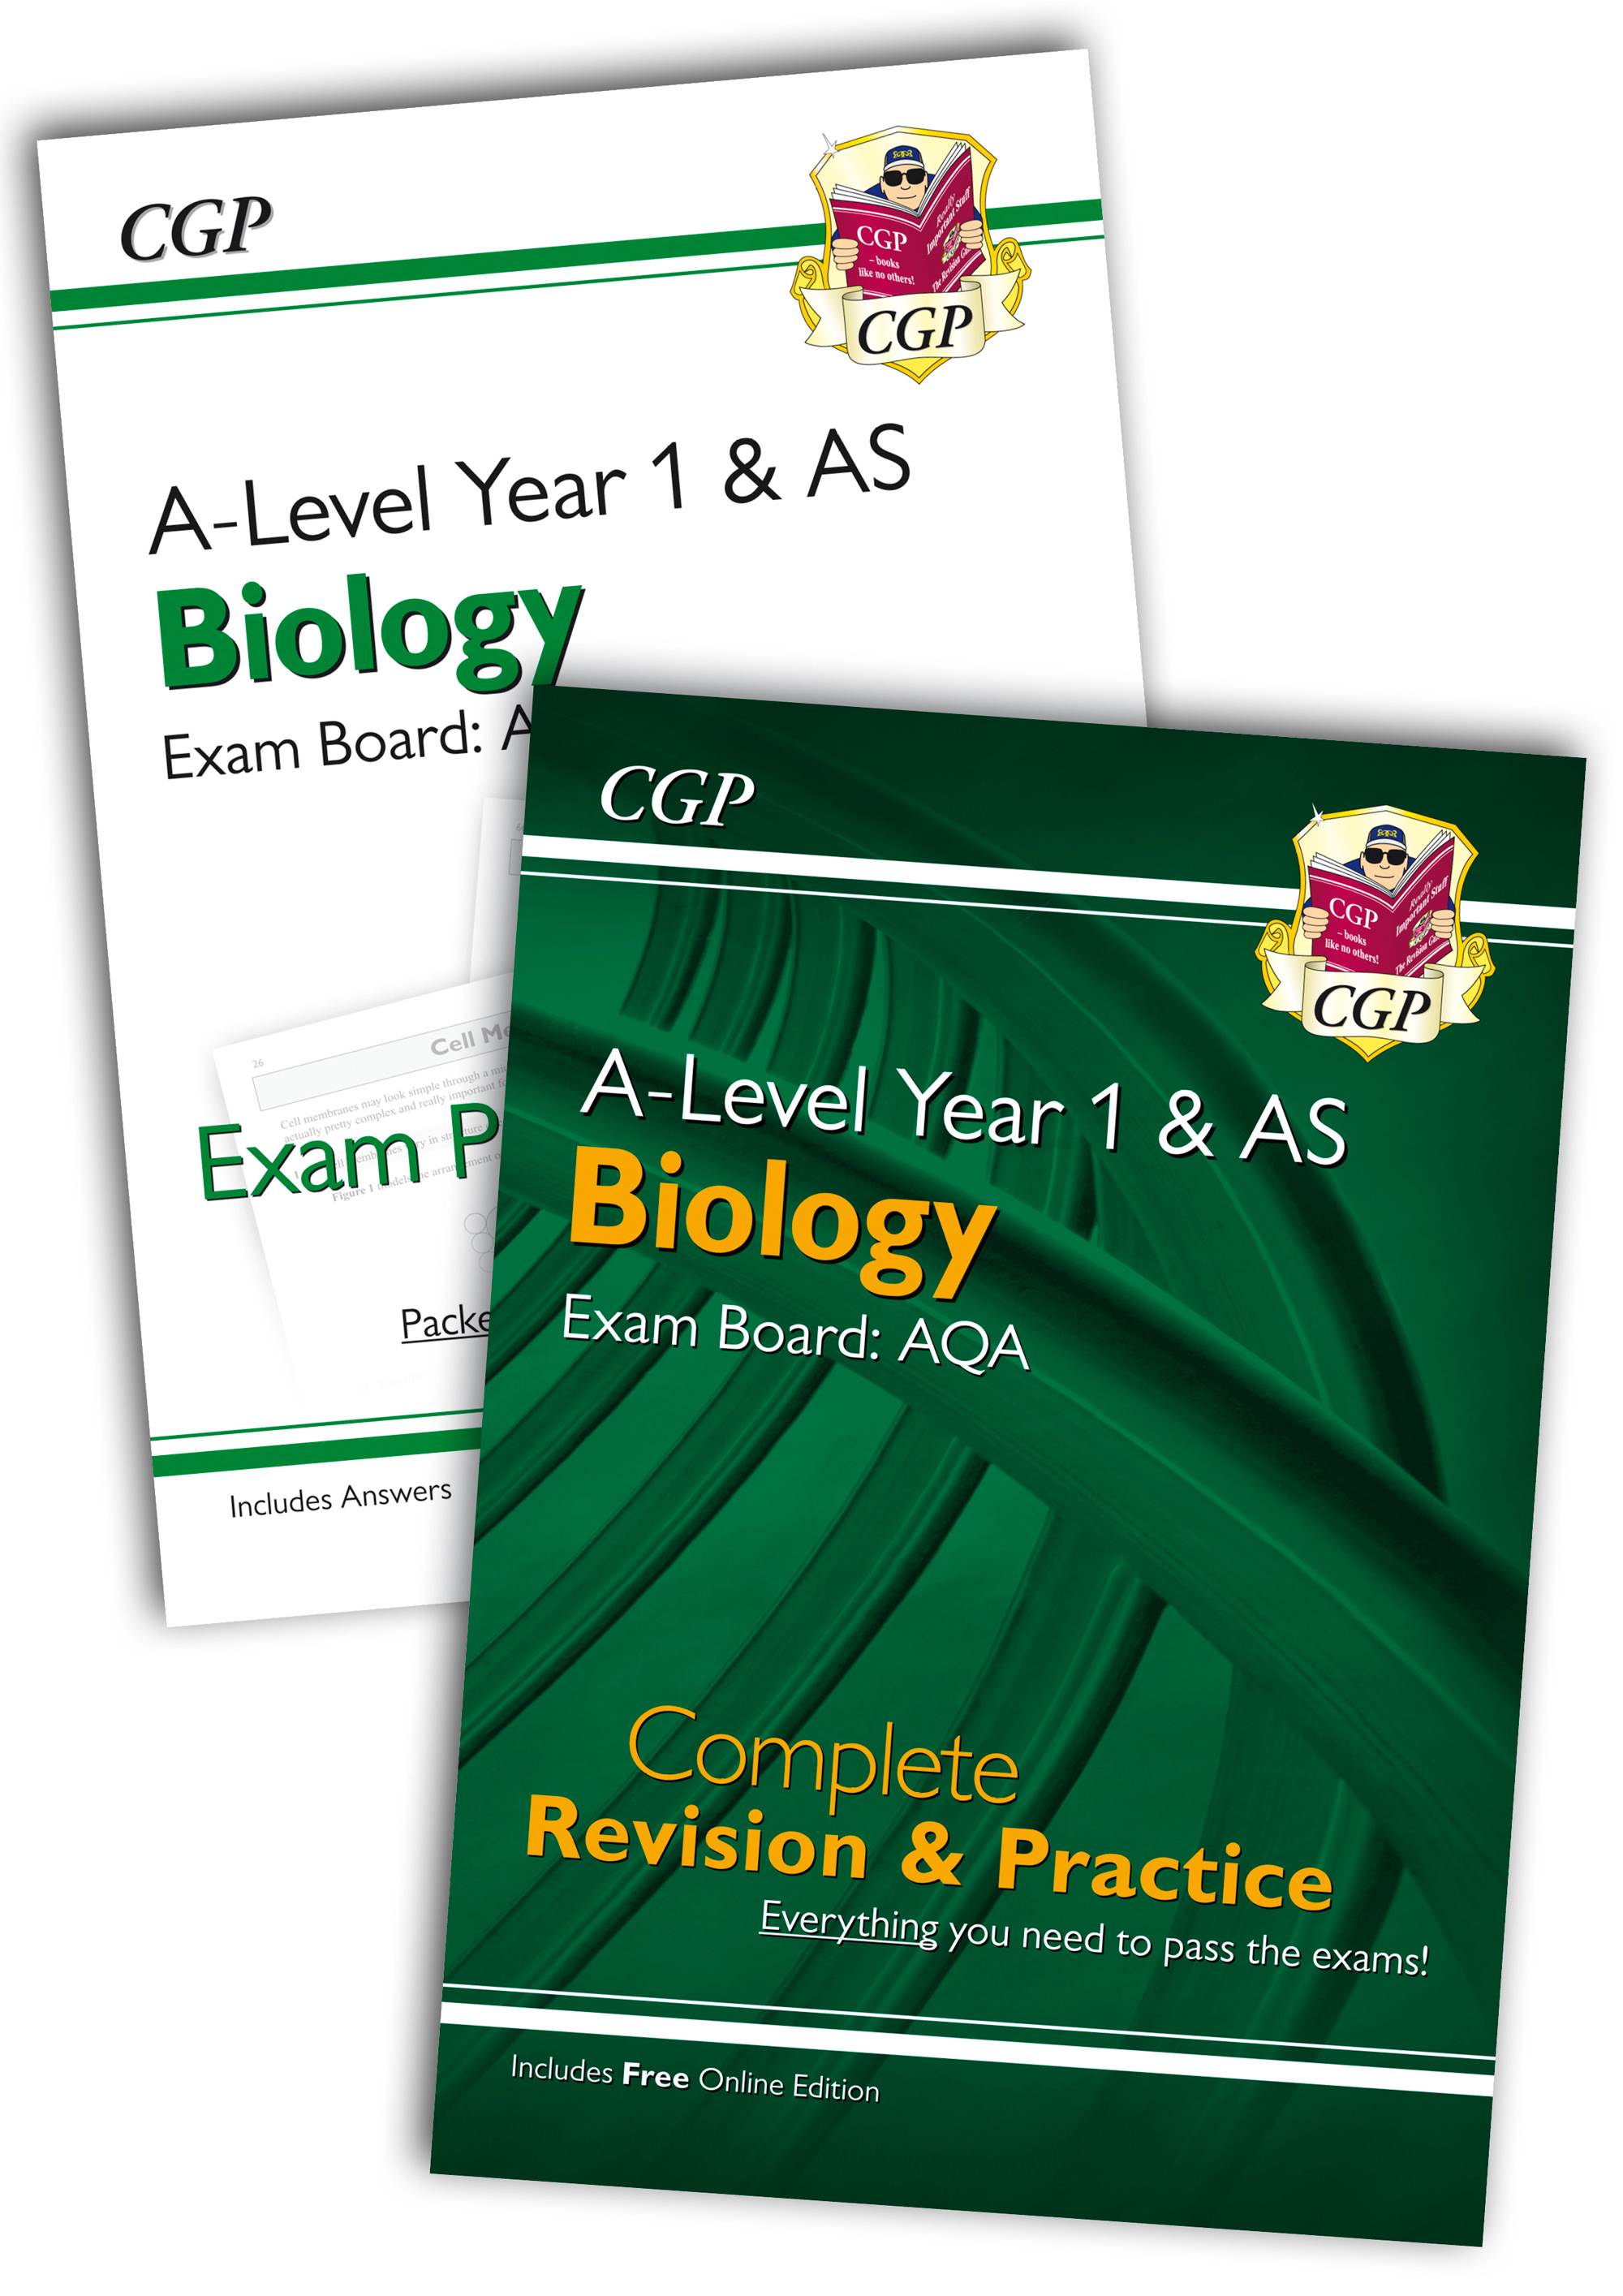 BARQB51 - New Complete Revision and Exam Practice A-Level Biology Bundle: AQA Year 1 & AS